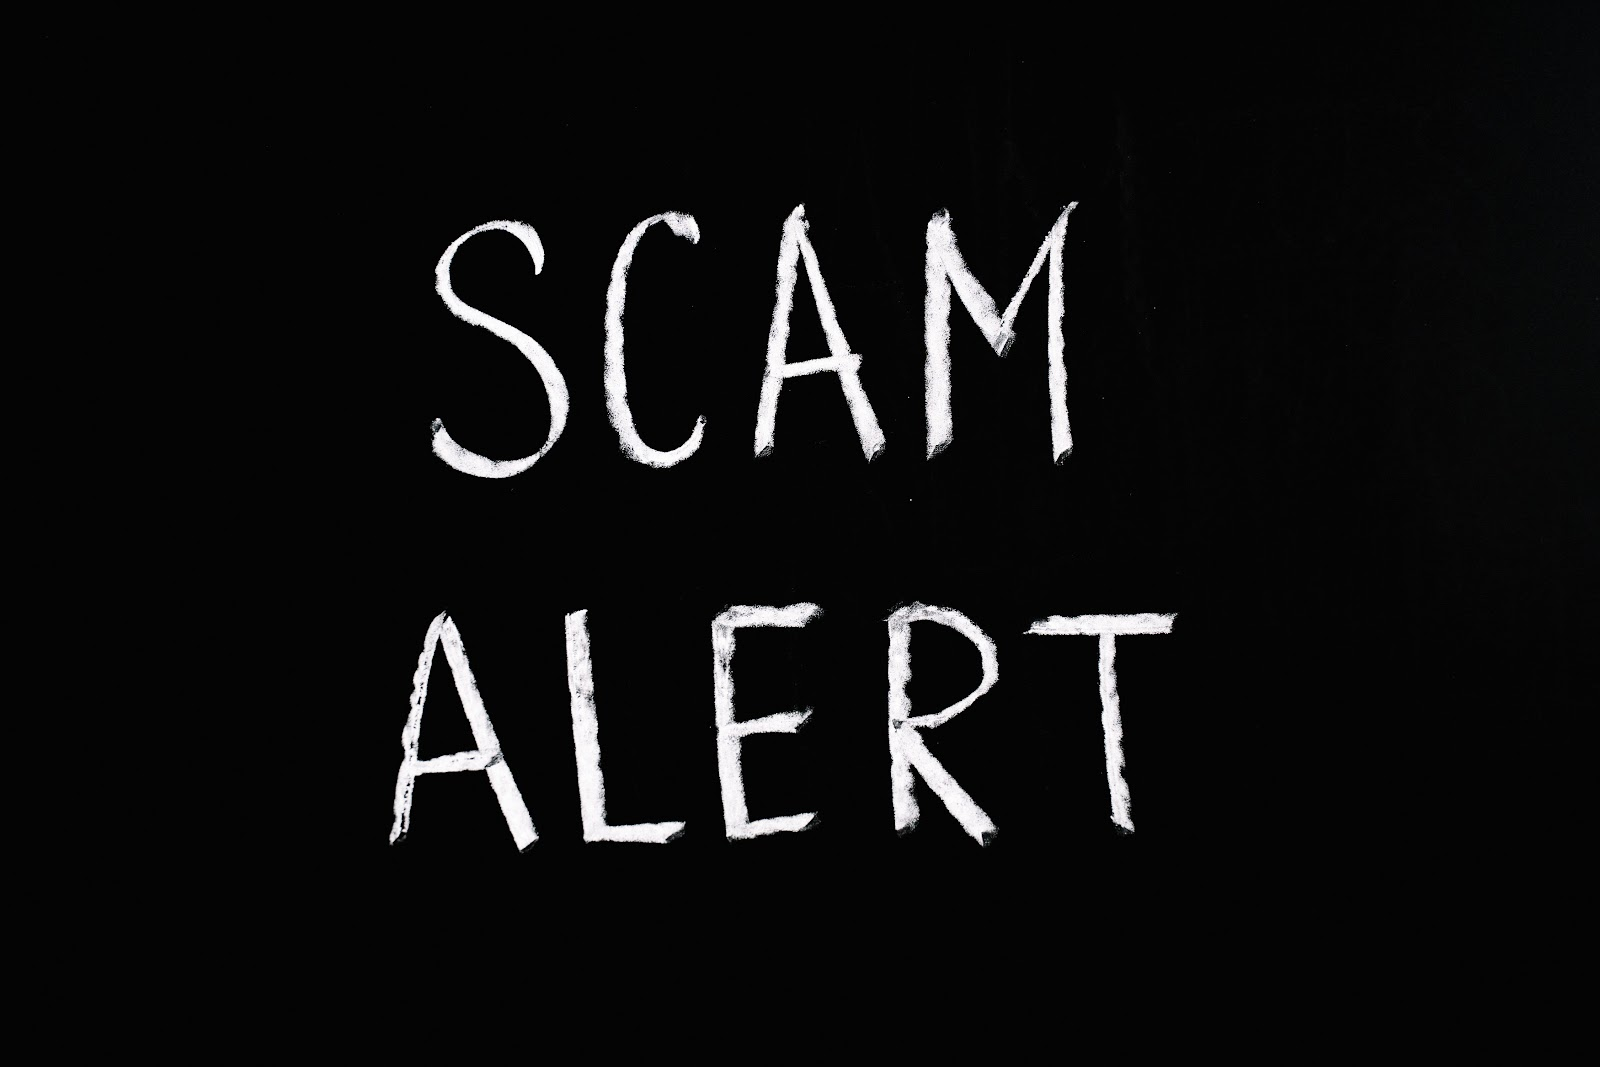 The words scam alert are written chalk style in white on a black background.